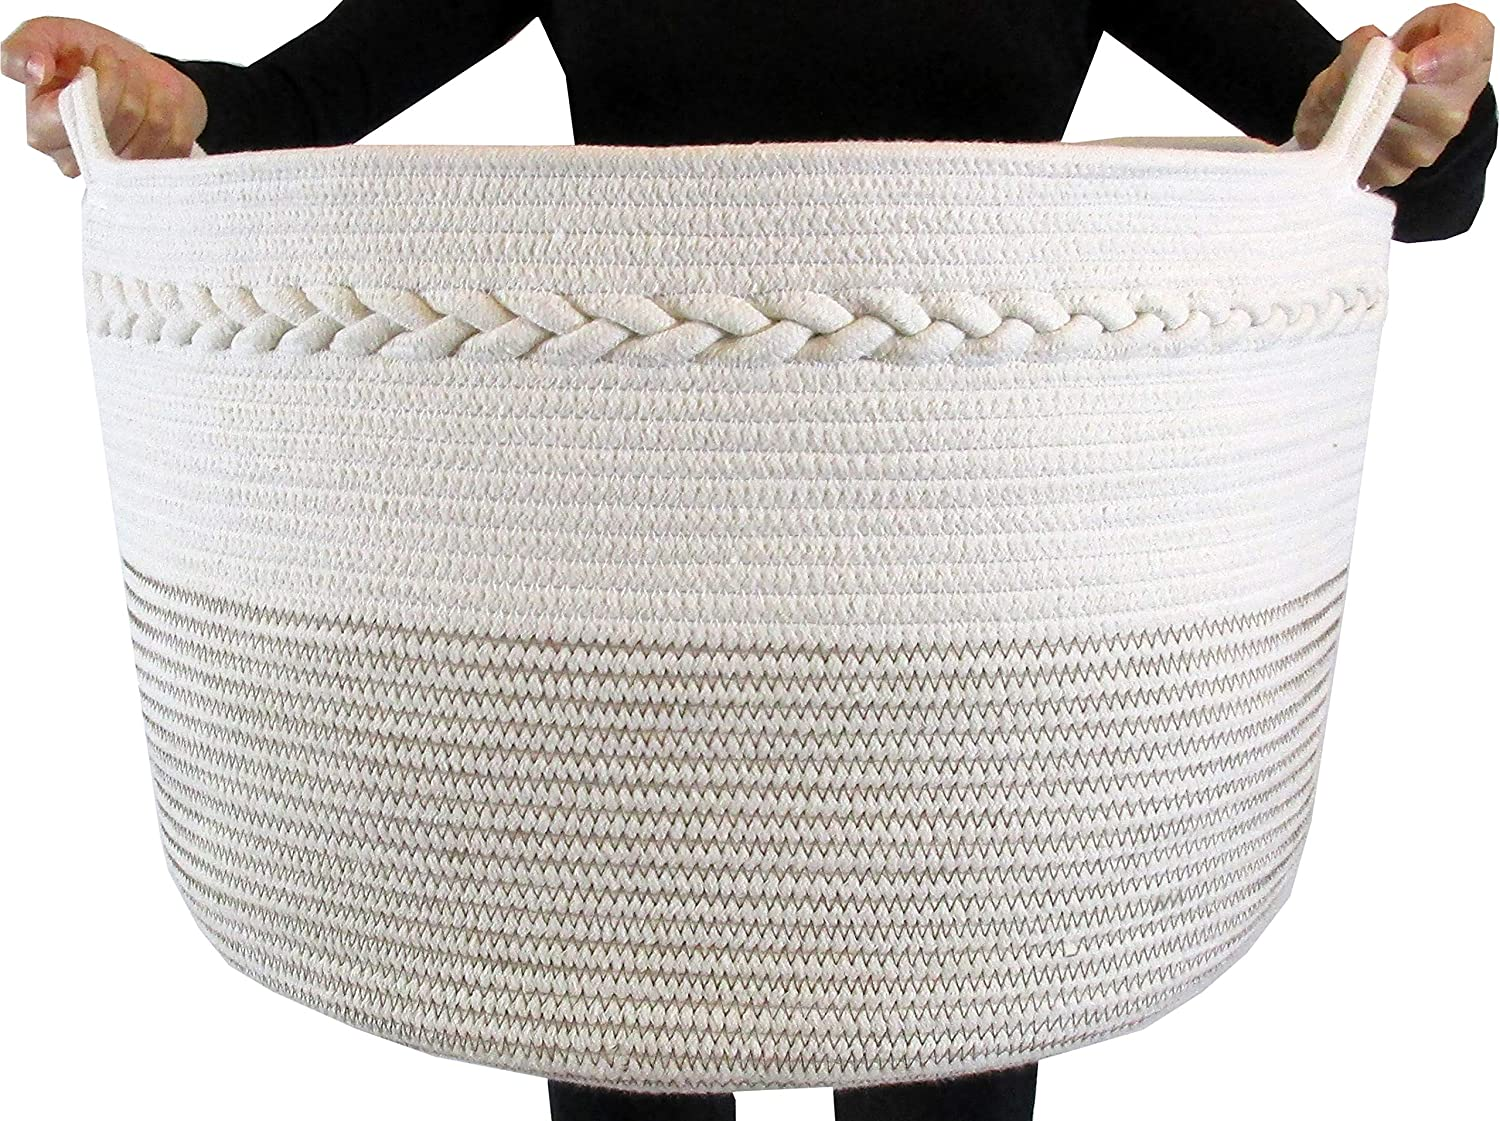 "Cotton Rope Storage Basket - Decorative Woven Basket Great for Large Laundry Basket, Blanket Basket, Laundry Hamper, Kids & Babies Toy Basket, Toy Bin, XXL 20""X 13.5"""